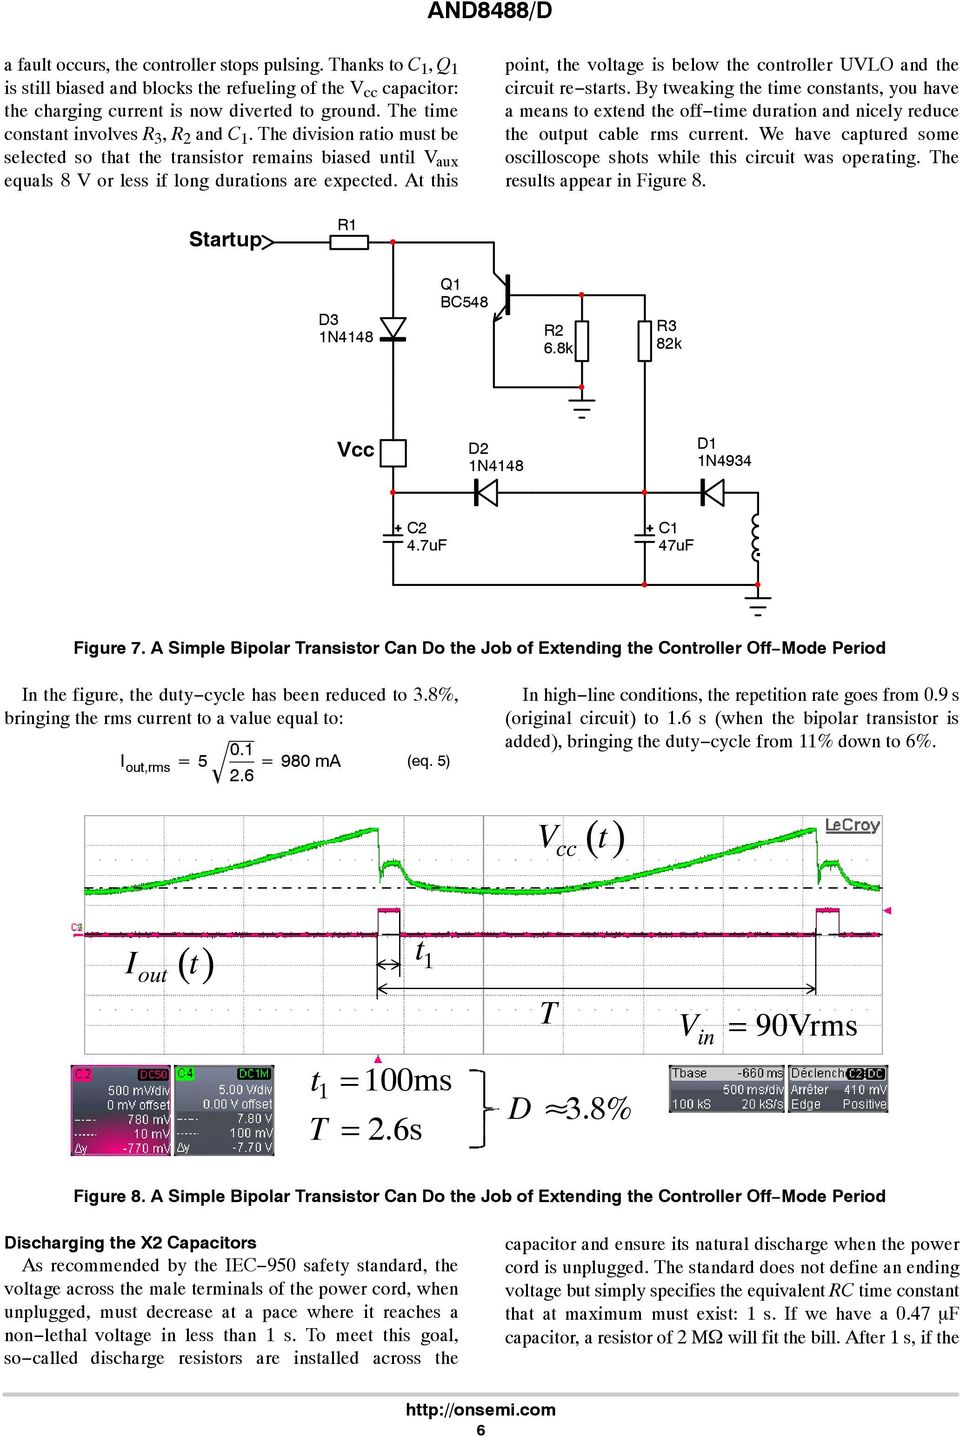 And8488 D Tips And Tricks For The Ncp1250 Application Note Pdf Stf202 Usb Upstream Port Filter Tvs Emi Filtering Esd Controller Uvlo Circuit Re Starts By Tweaking Time Constants You Have